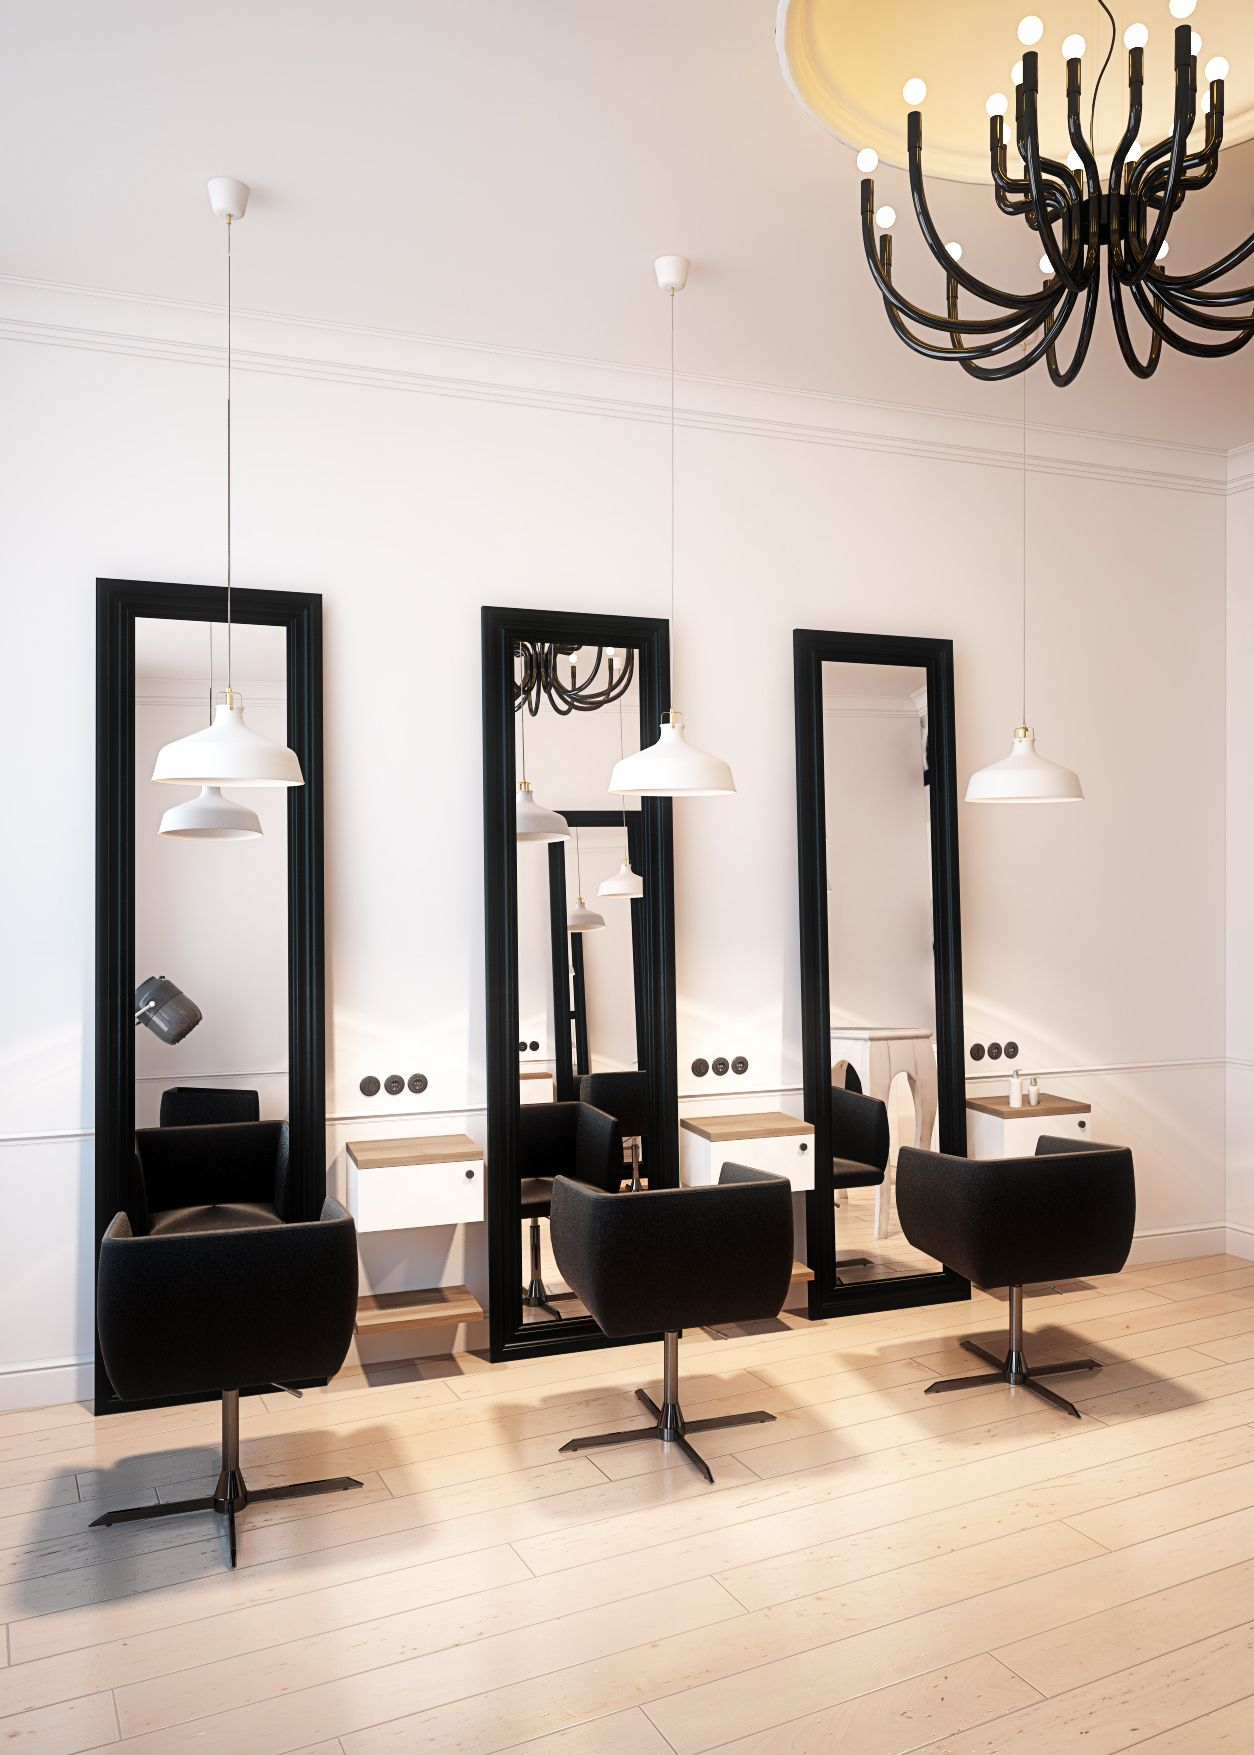 Home Salon Rennes Hairdresser Interior Design In Bytom Poland Archi Group Salon